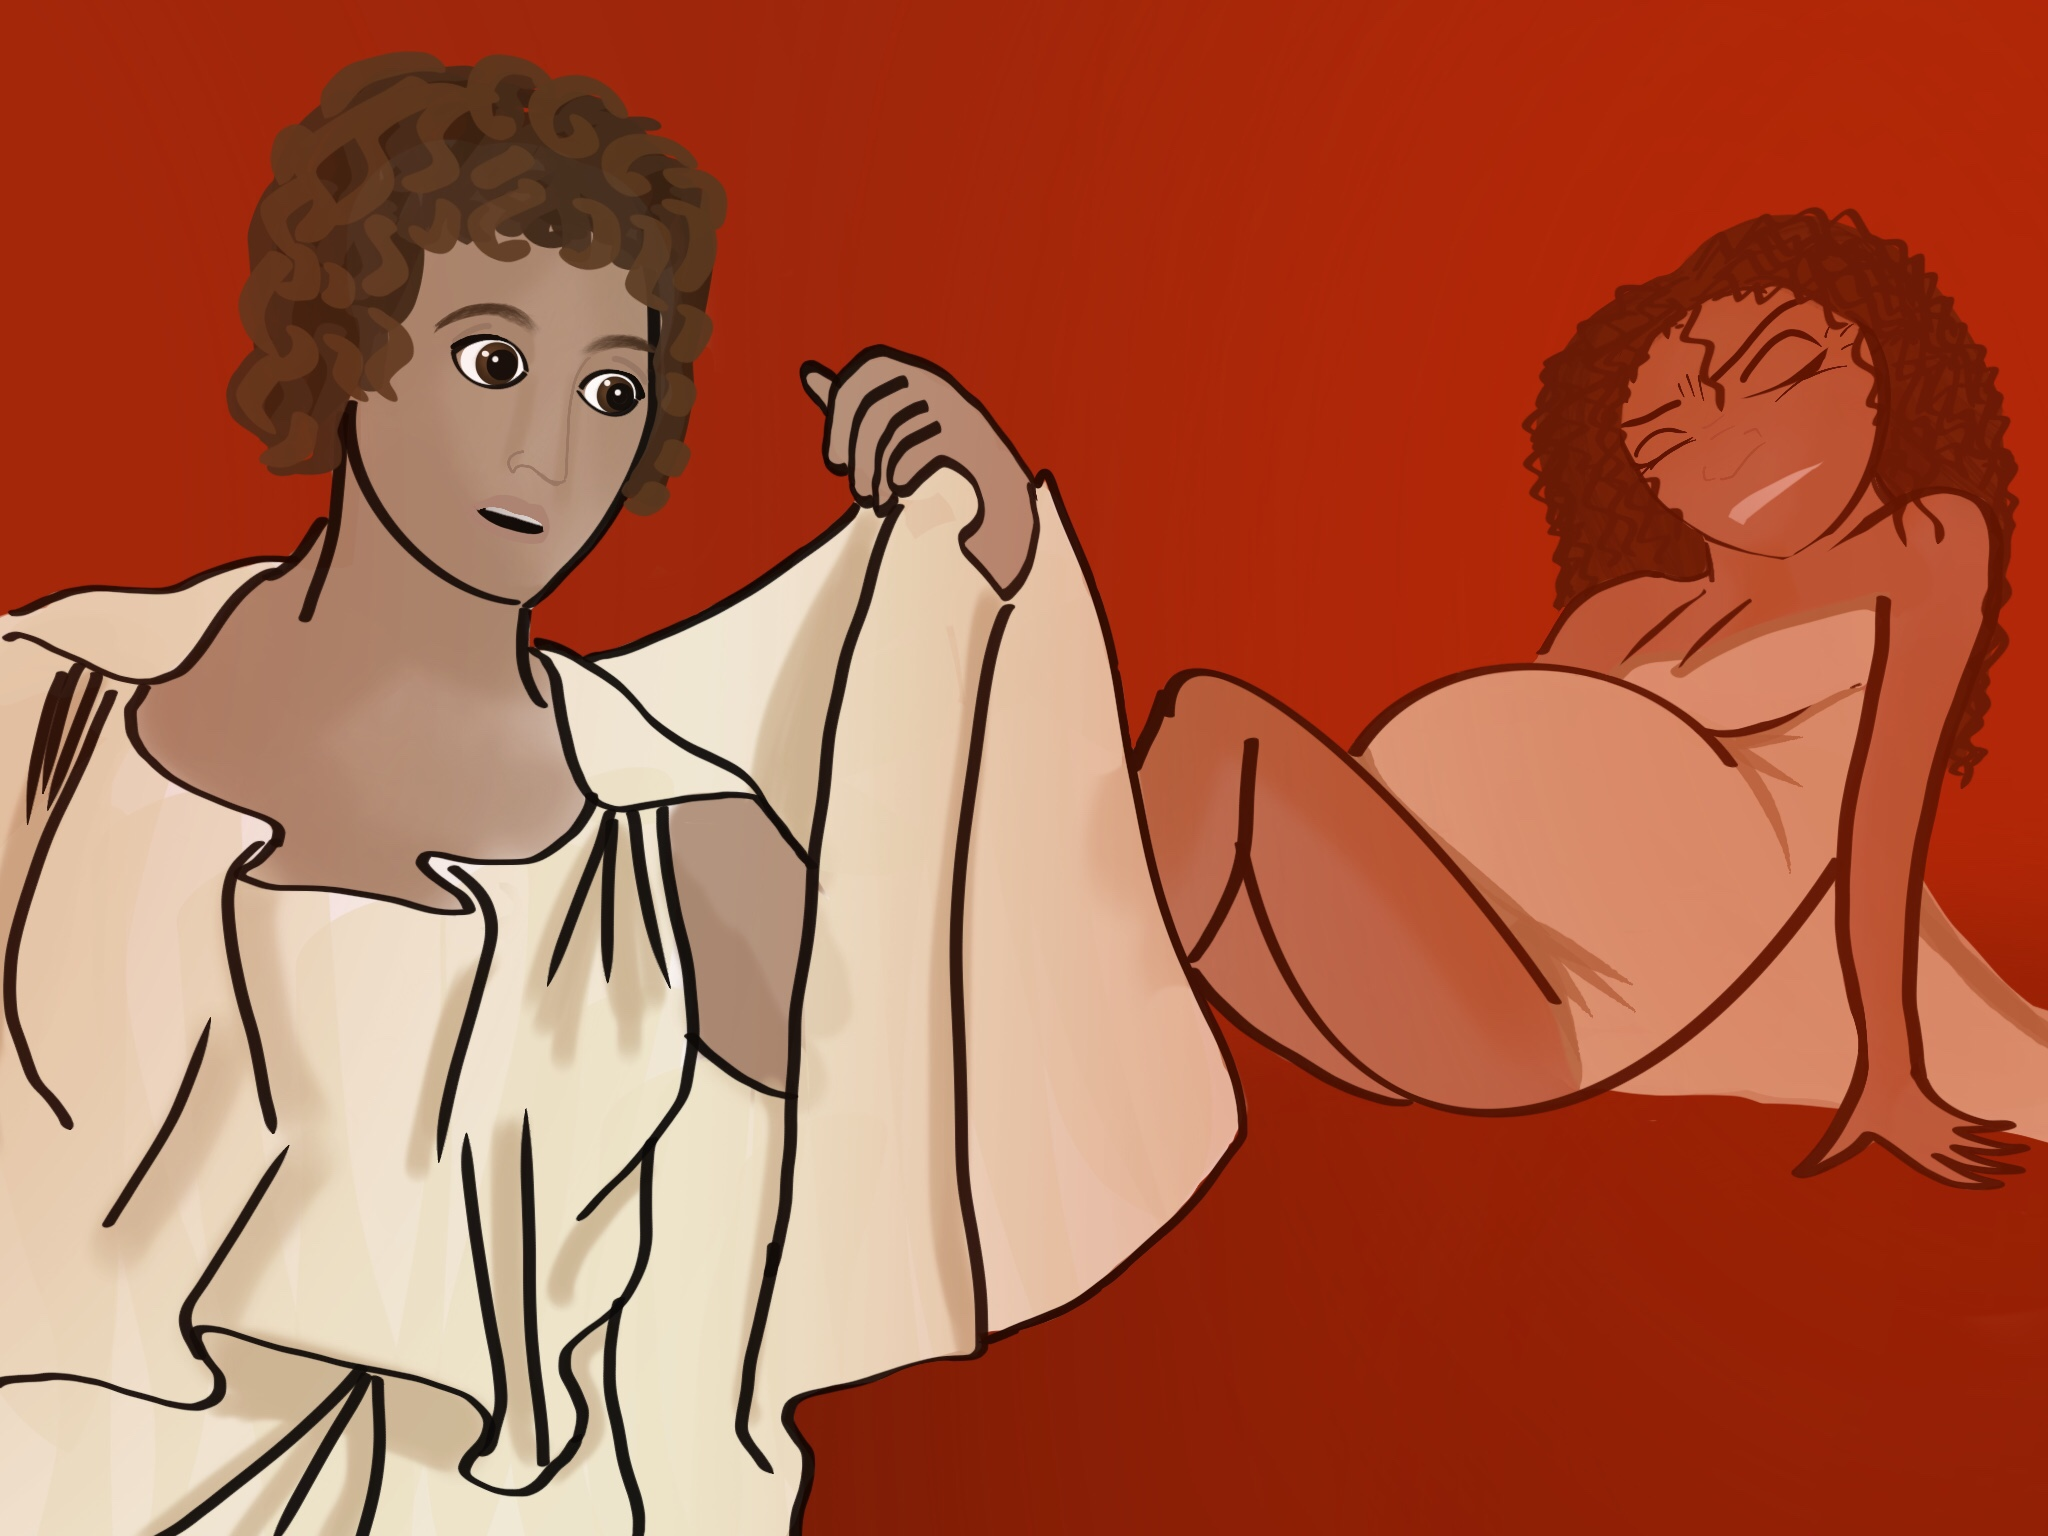 An illustration of Agnodice treating one of her patients. Agnodice is on the left, and is in the process of removing a layer of clothing, the female figure on the right is in labour.